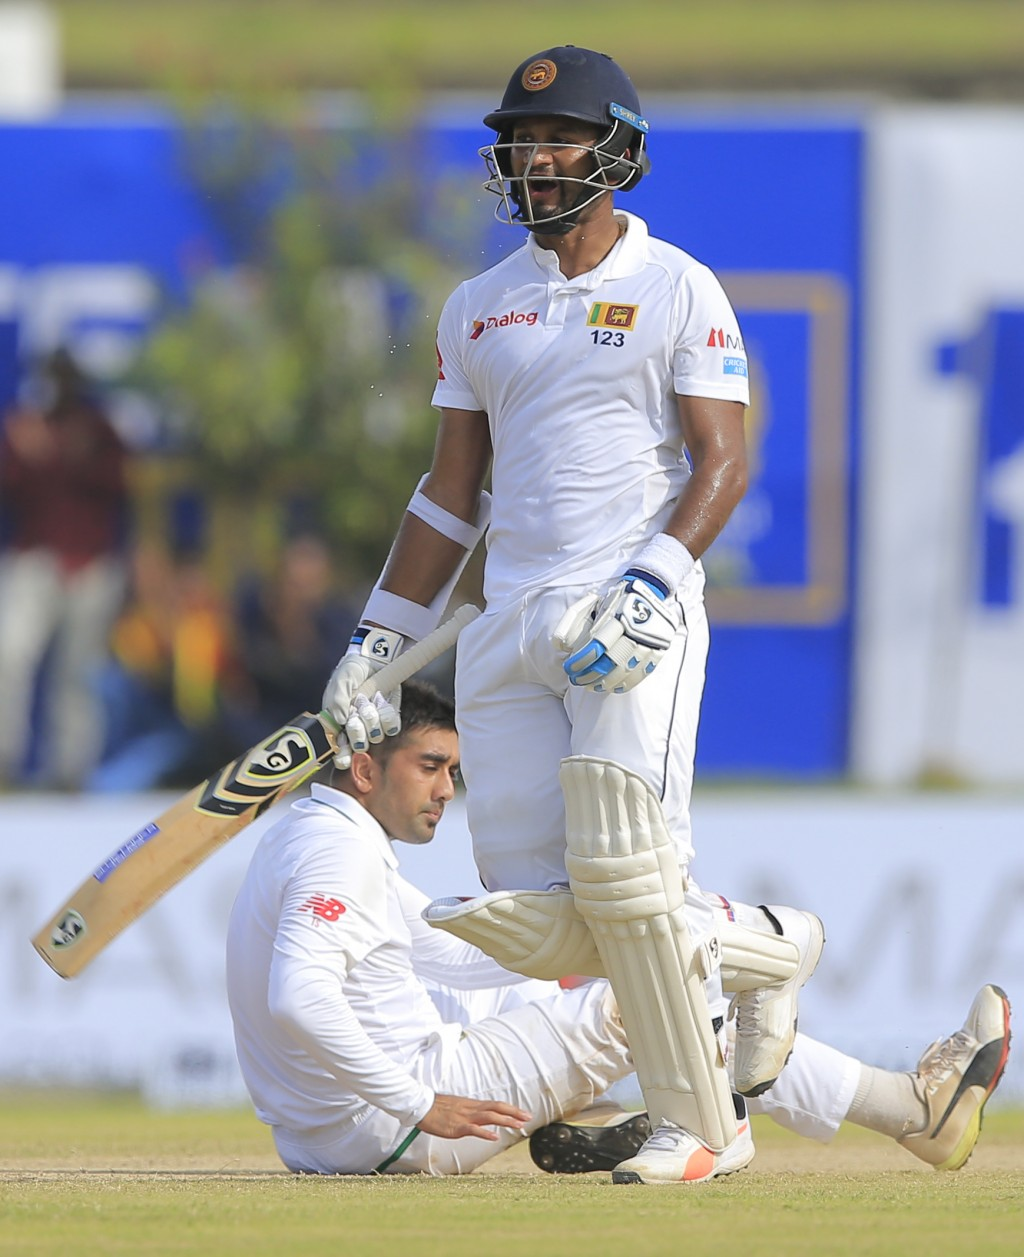 Sri Lanka's Dimuth Karunaratne, right, celebrates scoring hundred runs as Tabraiz Shamsi watches during the first day's play of their first test crick